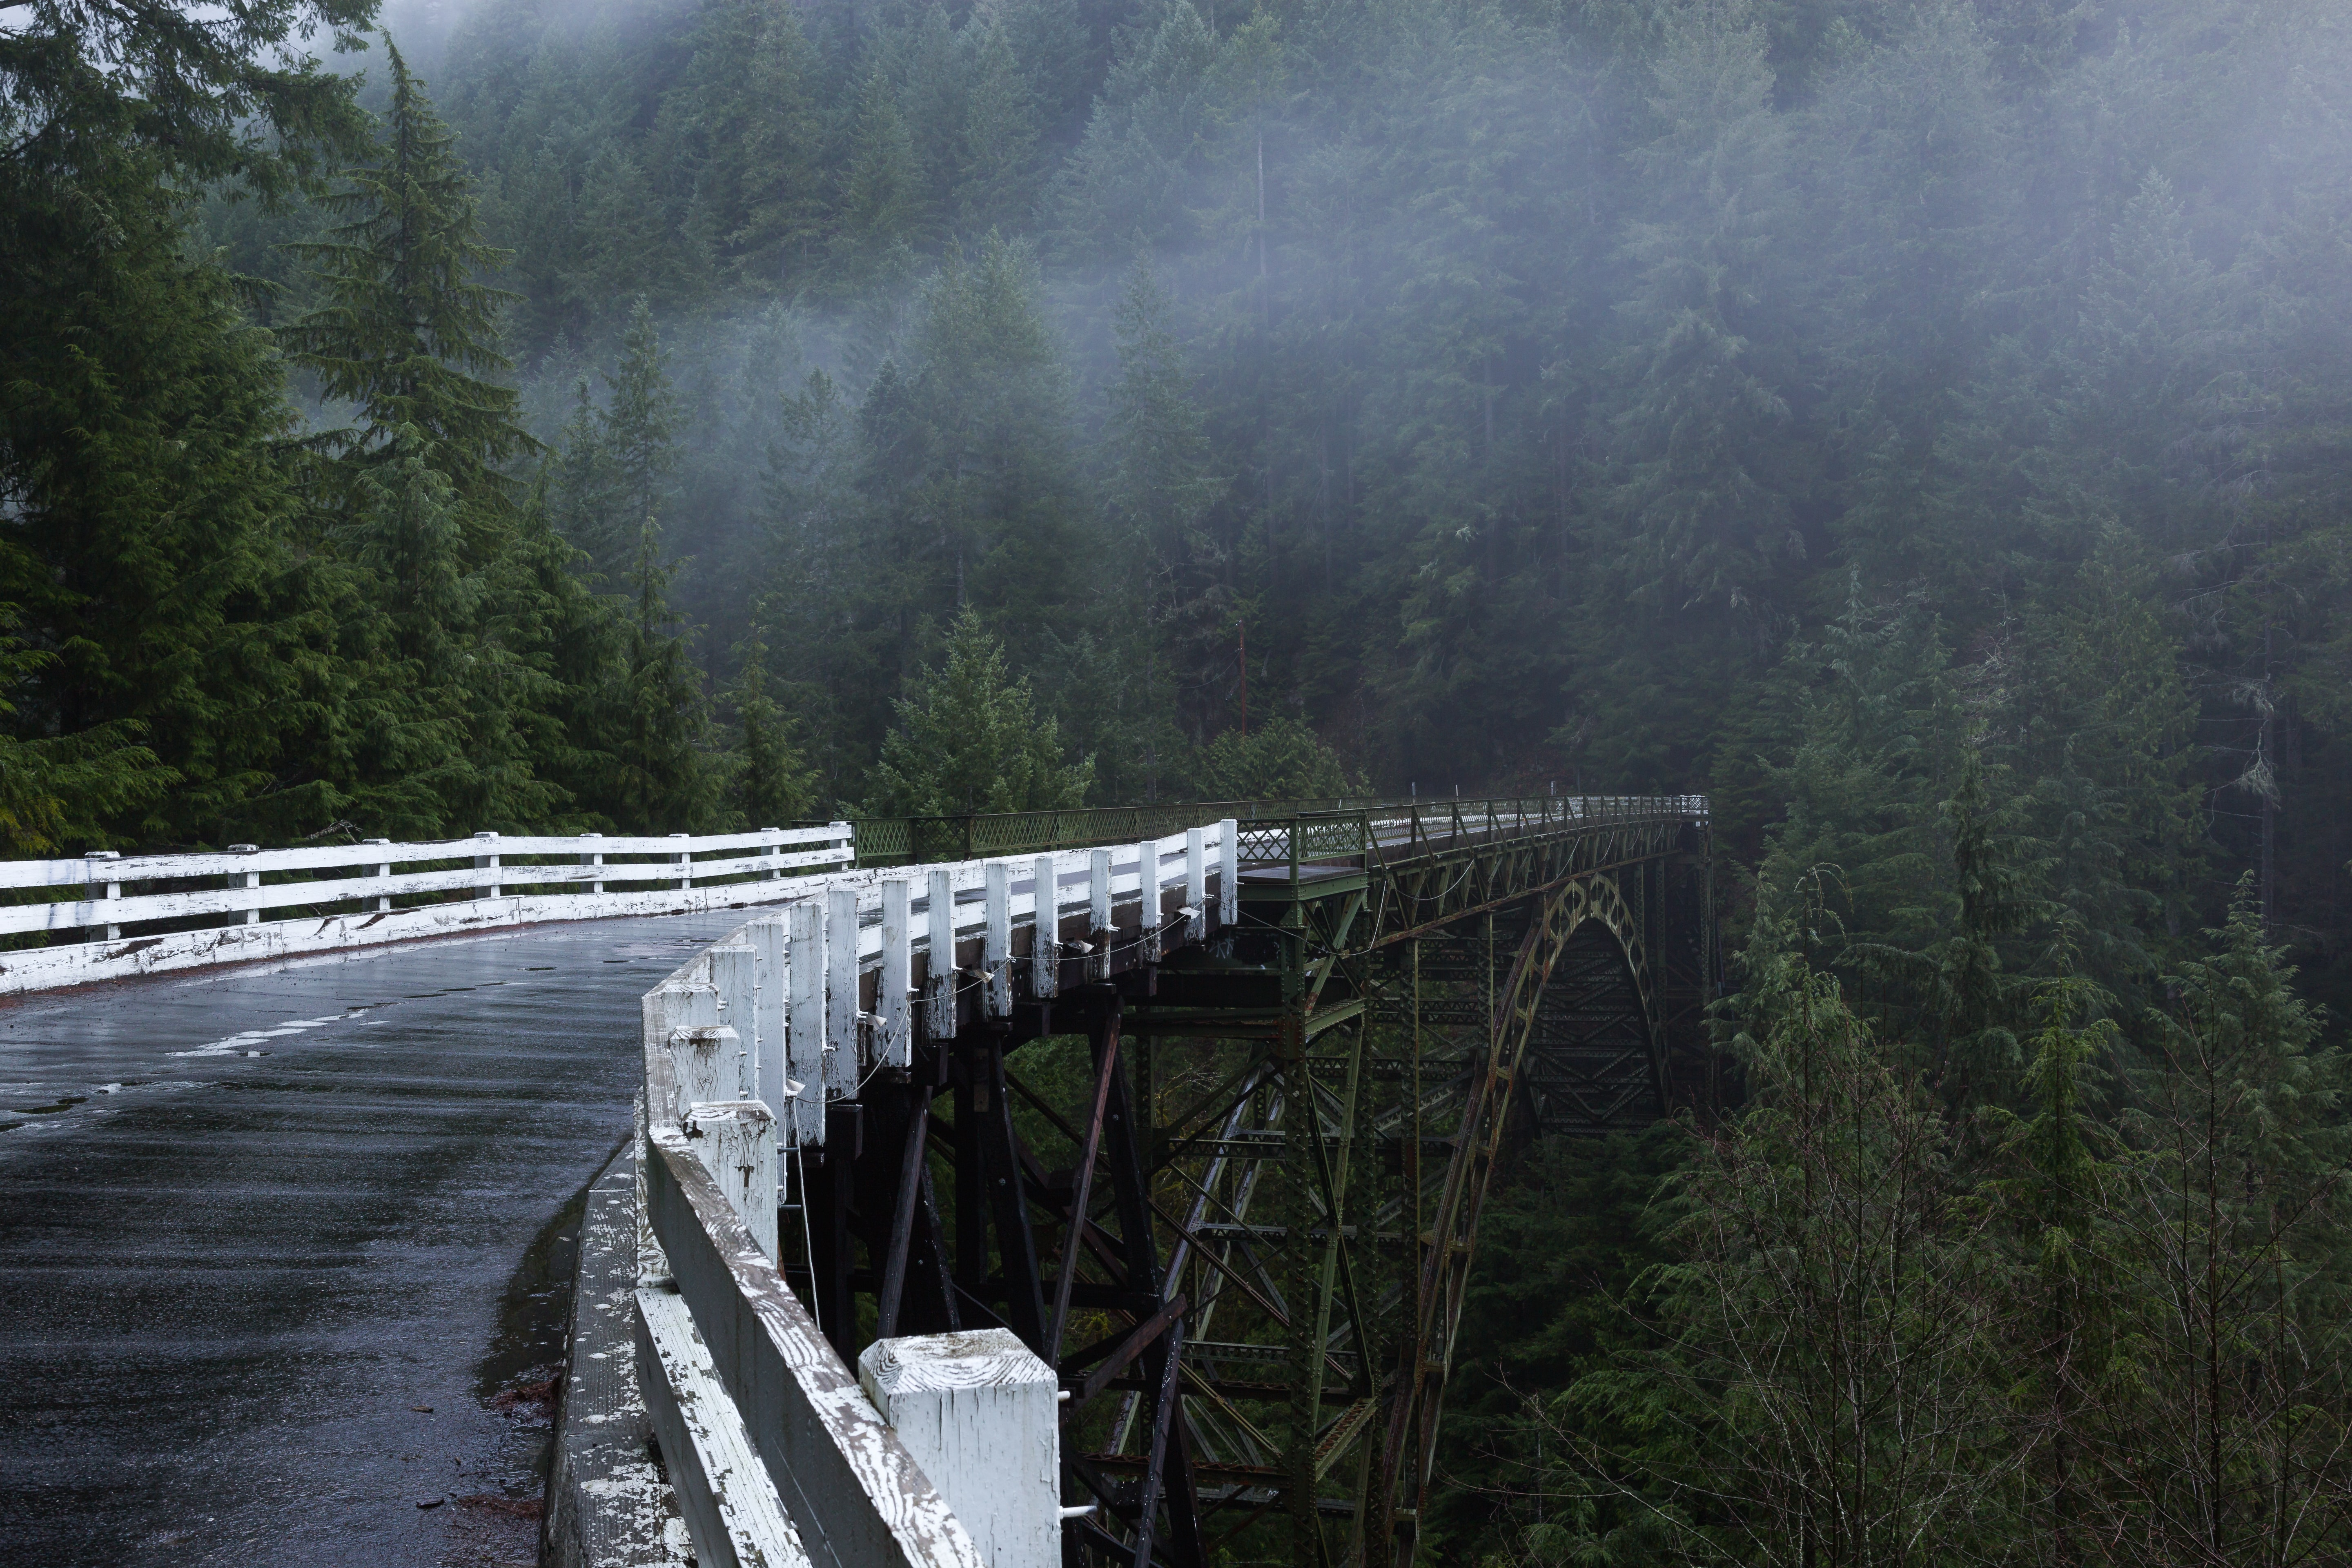 bridge towards mountain with trees during foggy daytime